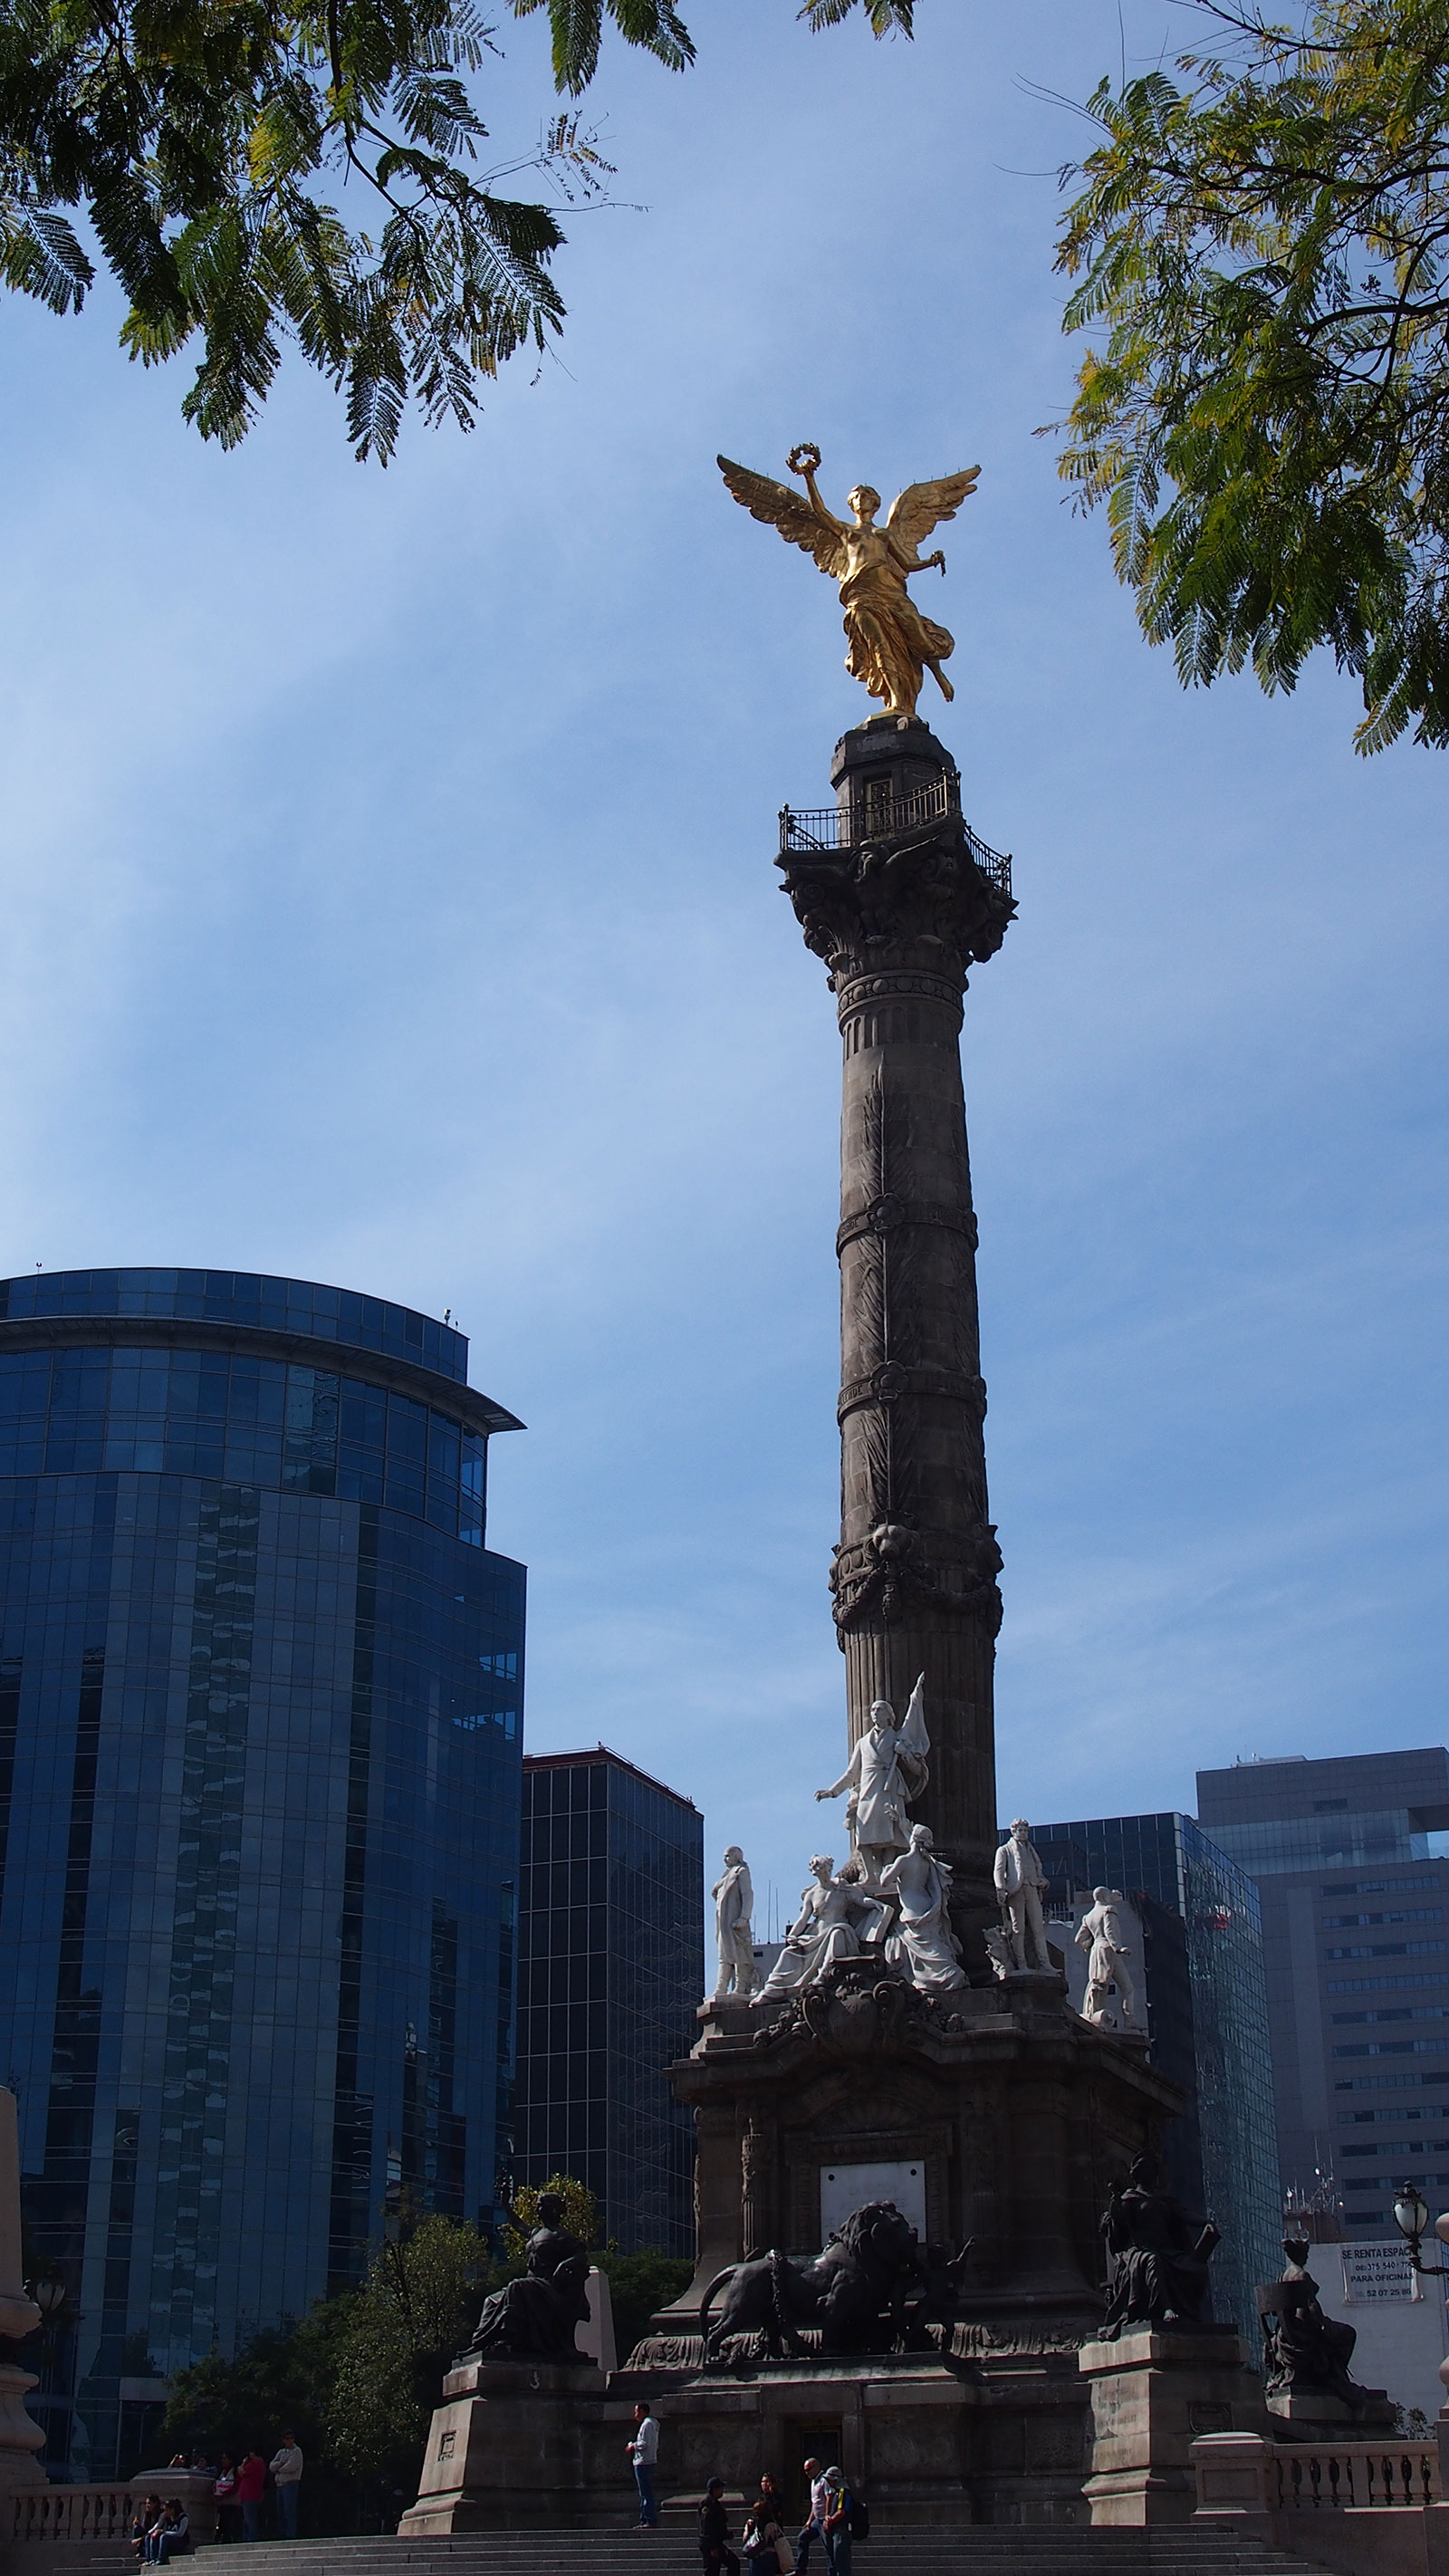 The Angel of Independence.